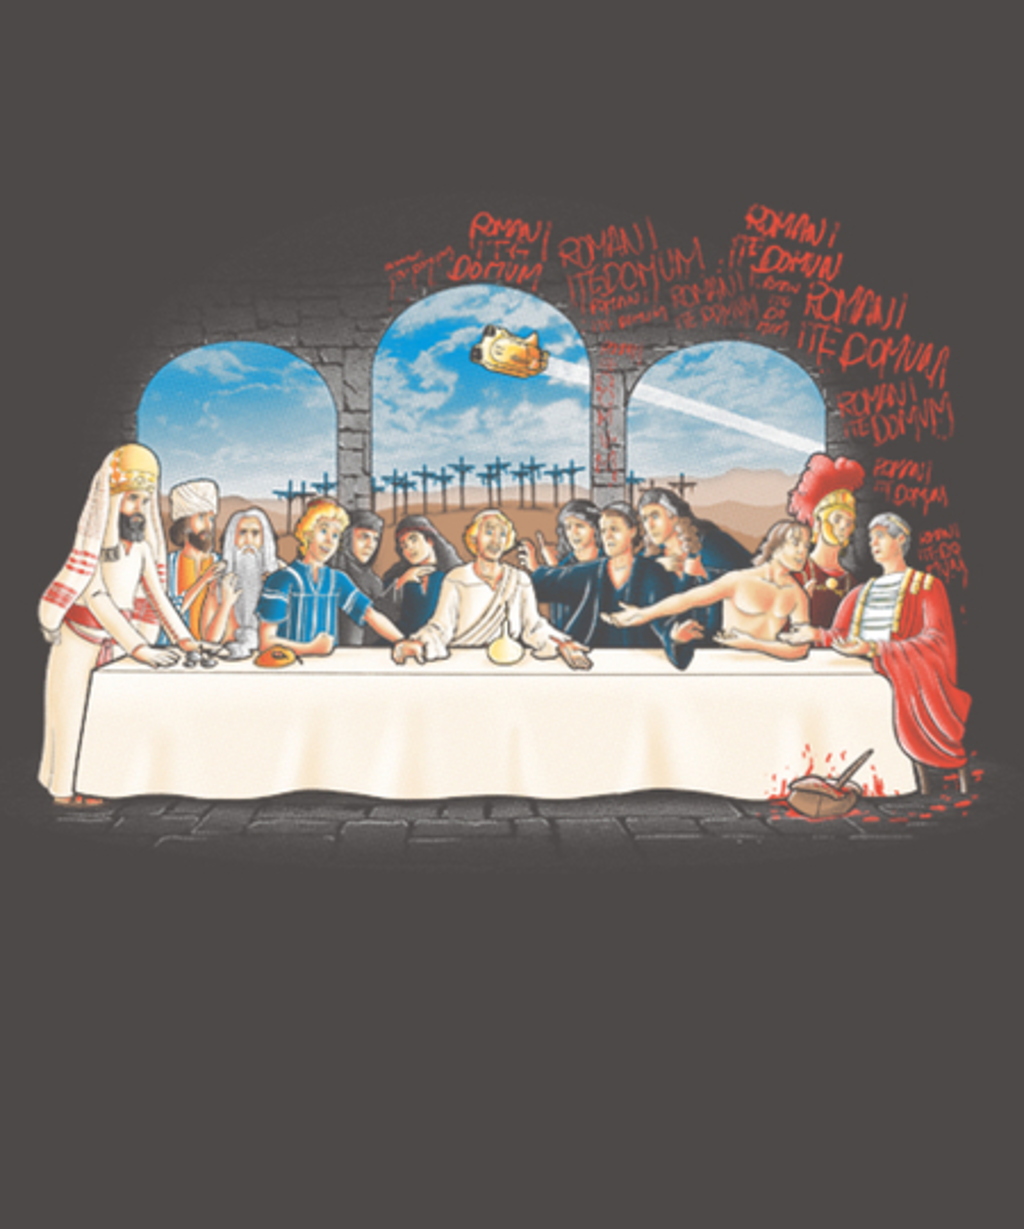 Qwertee: The last dinner of Brian